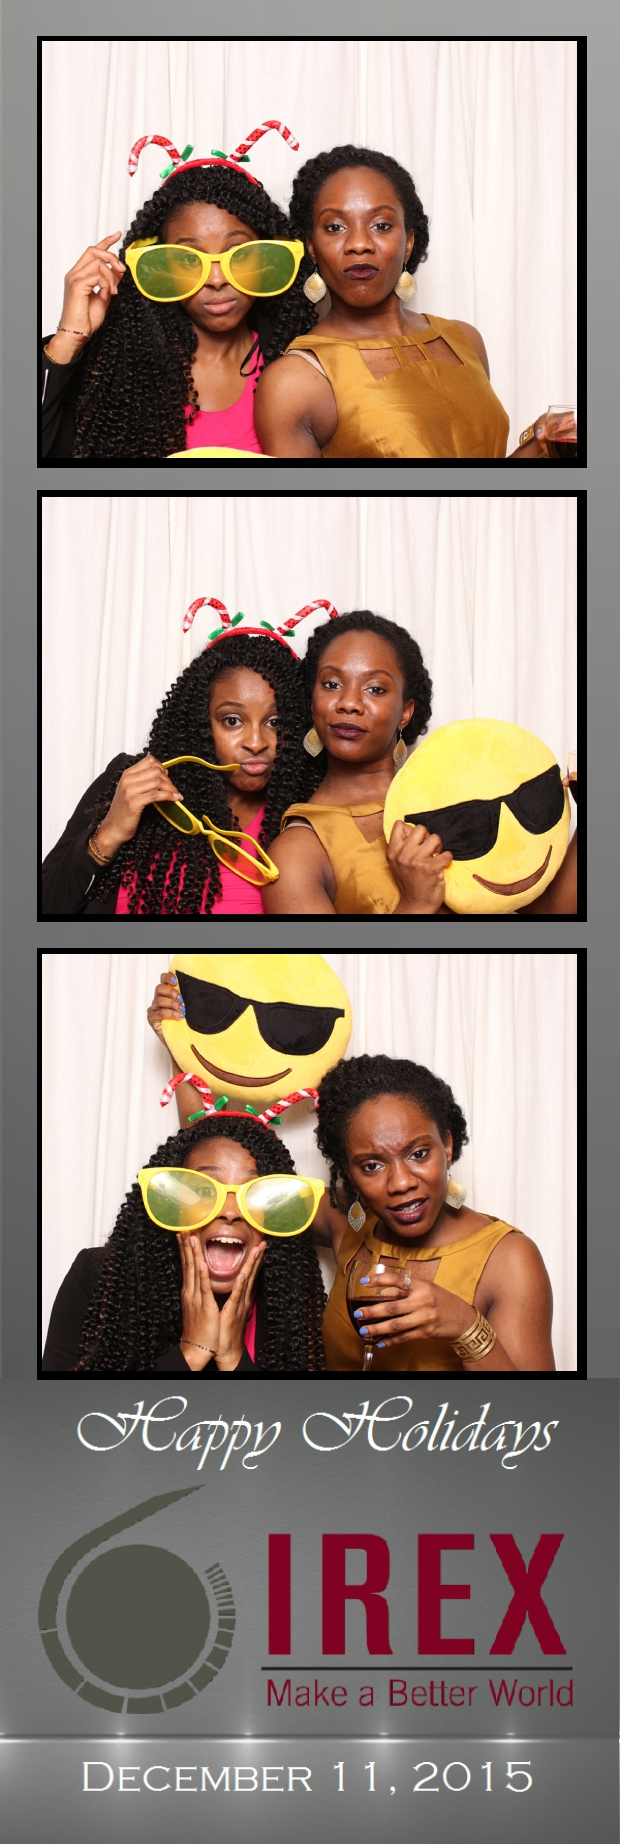 Guest House Events Photo Booth Strips IREX (84).jpg